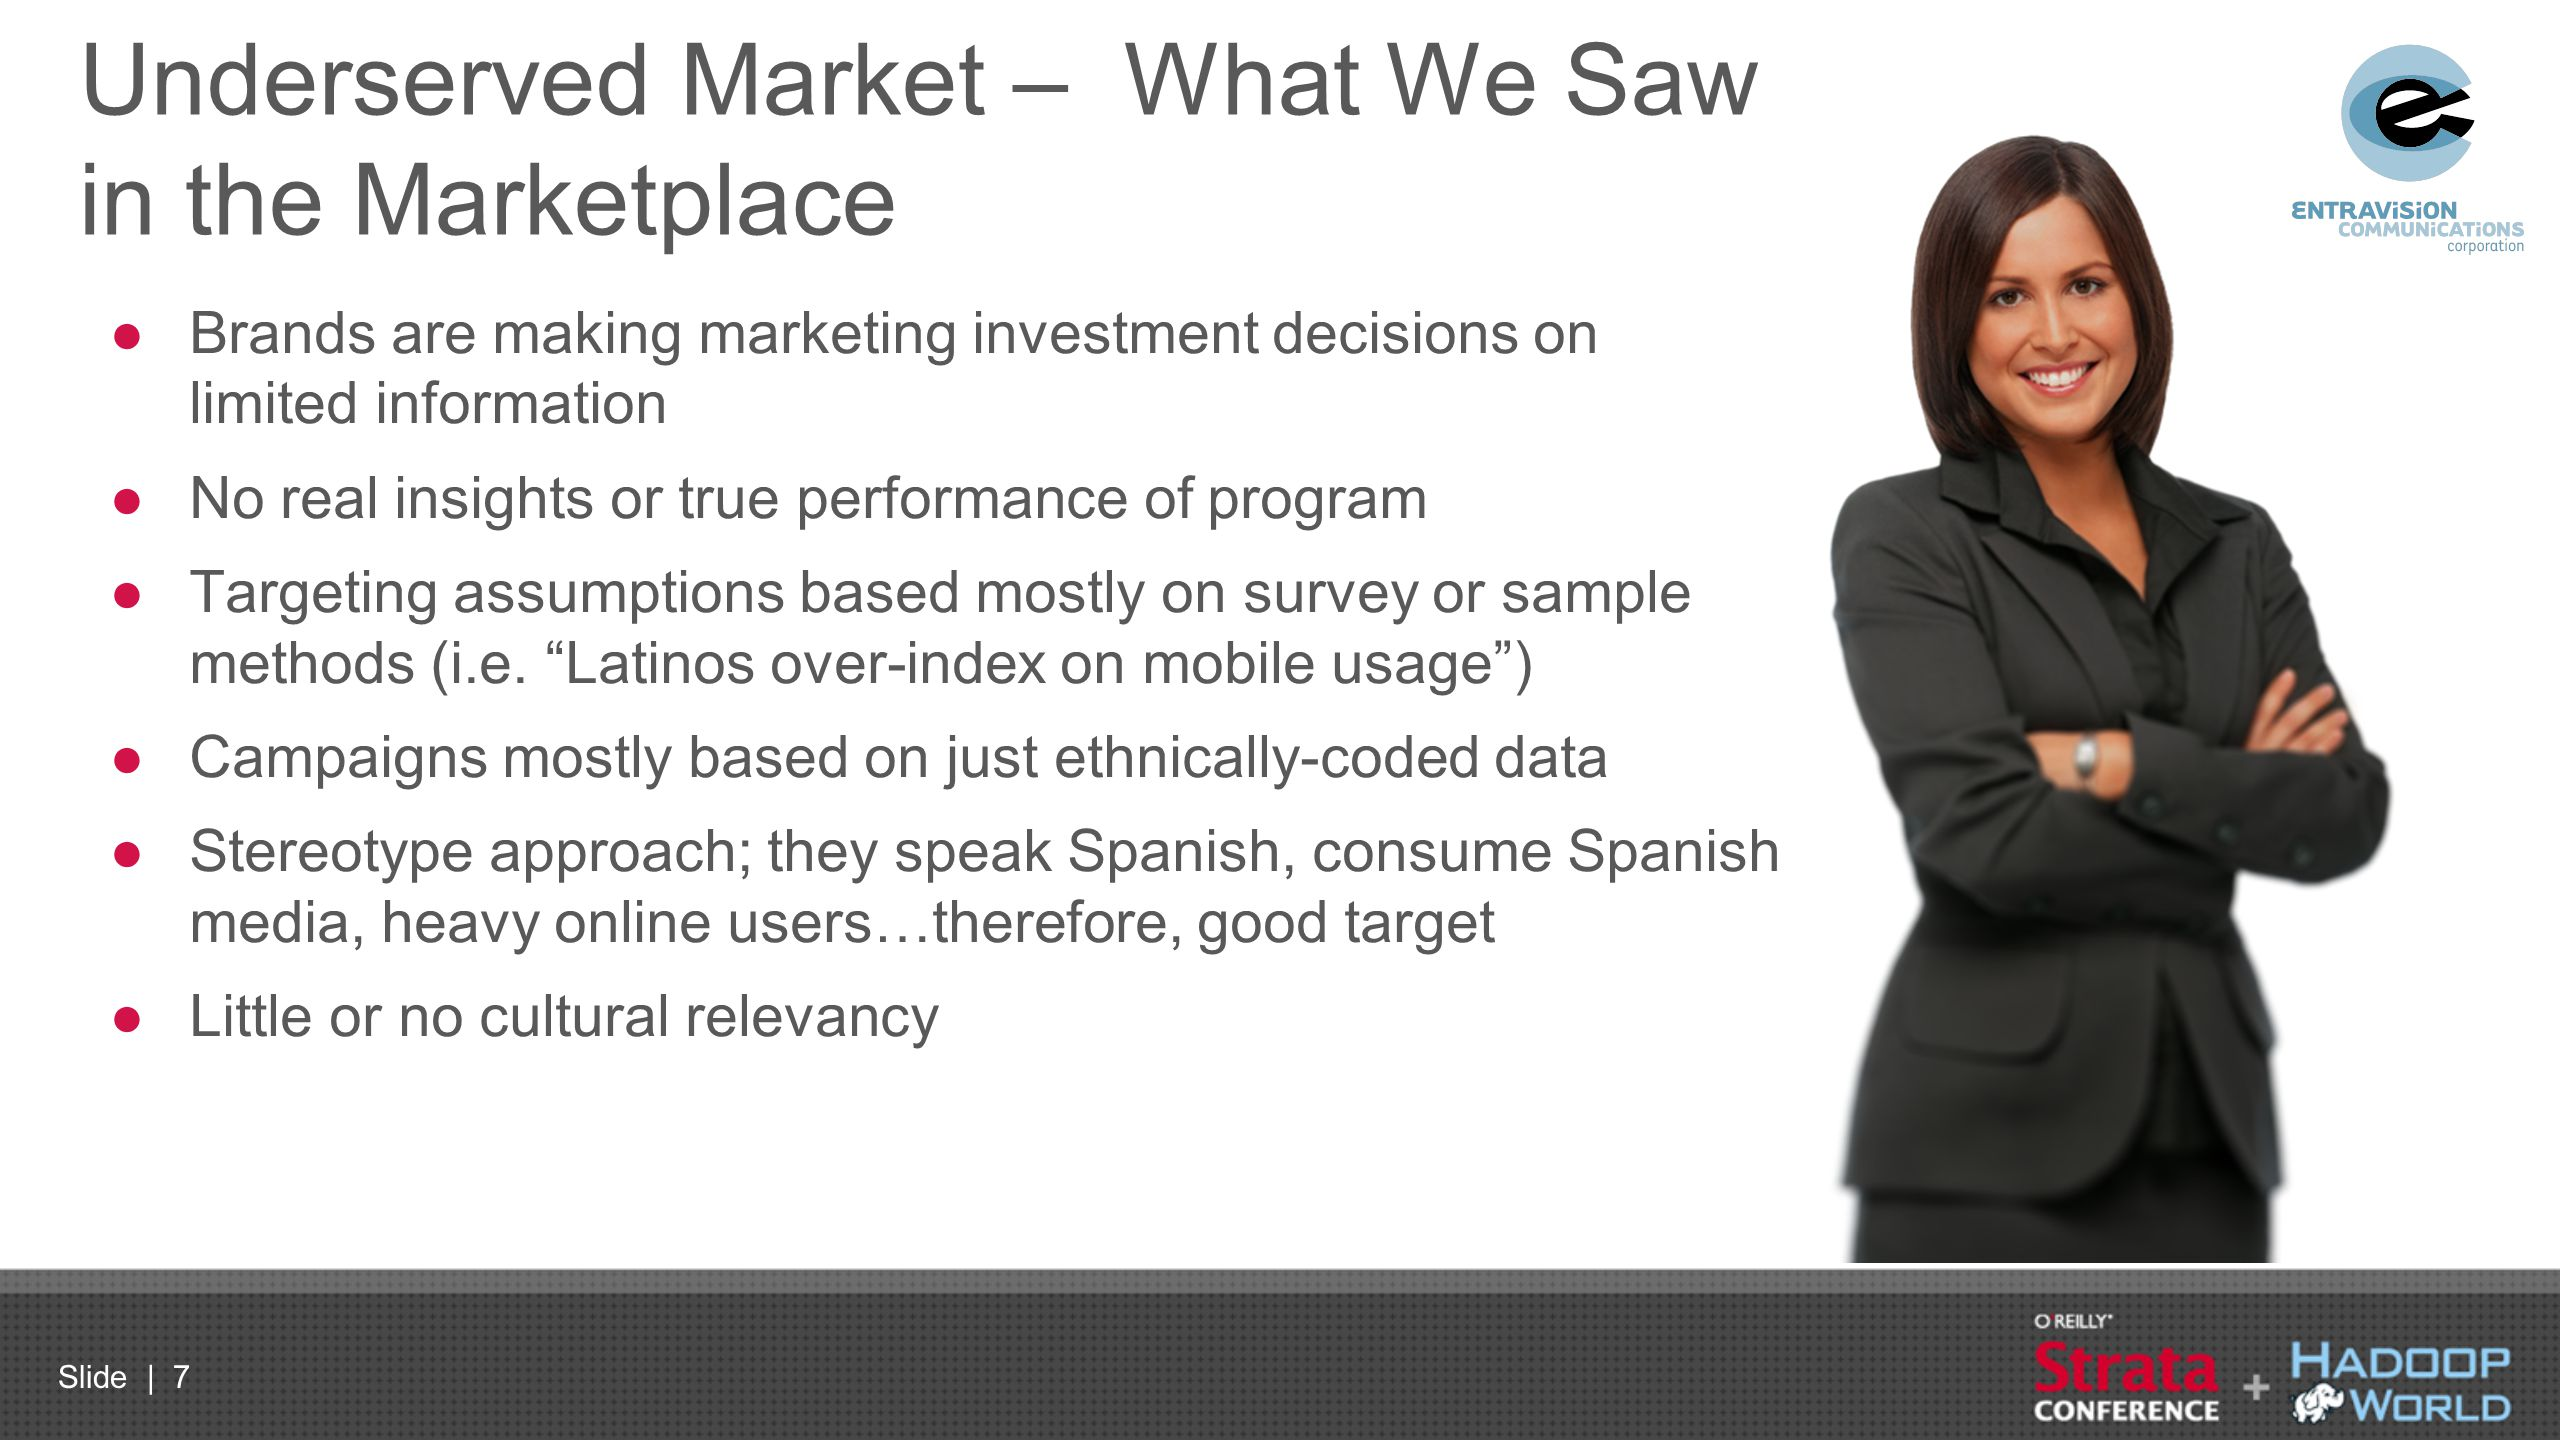 Underserved Market – What We Saw in the Marketplace